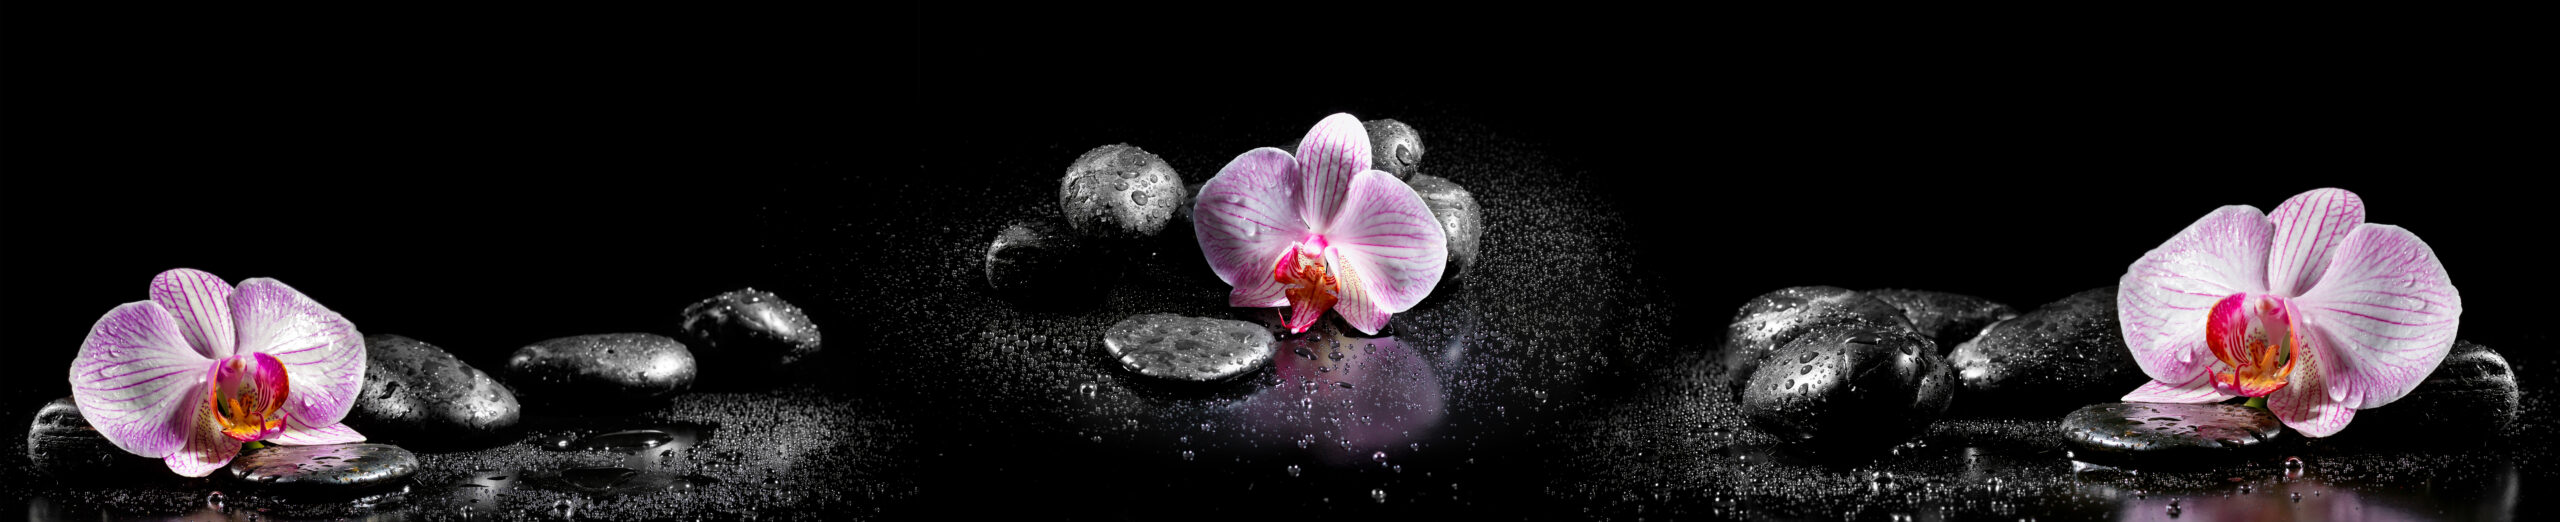 Horizontal panorama with pink orchids and zen stones on black background